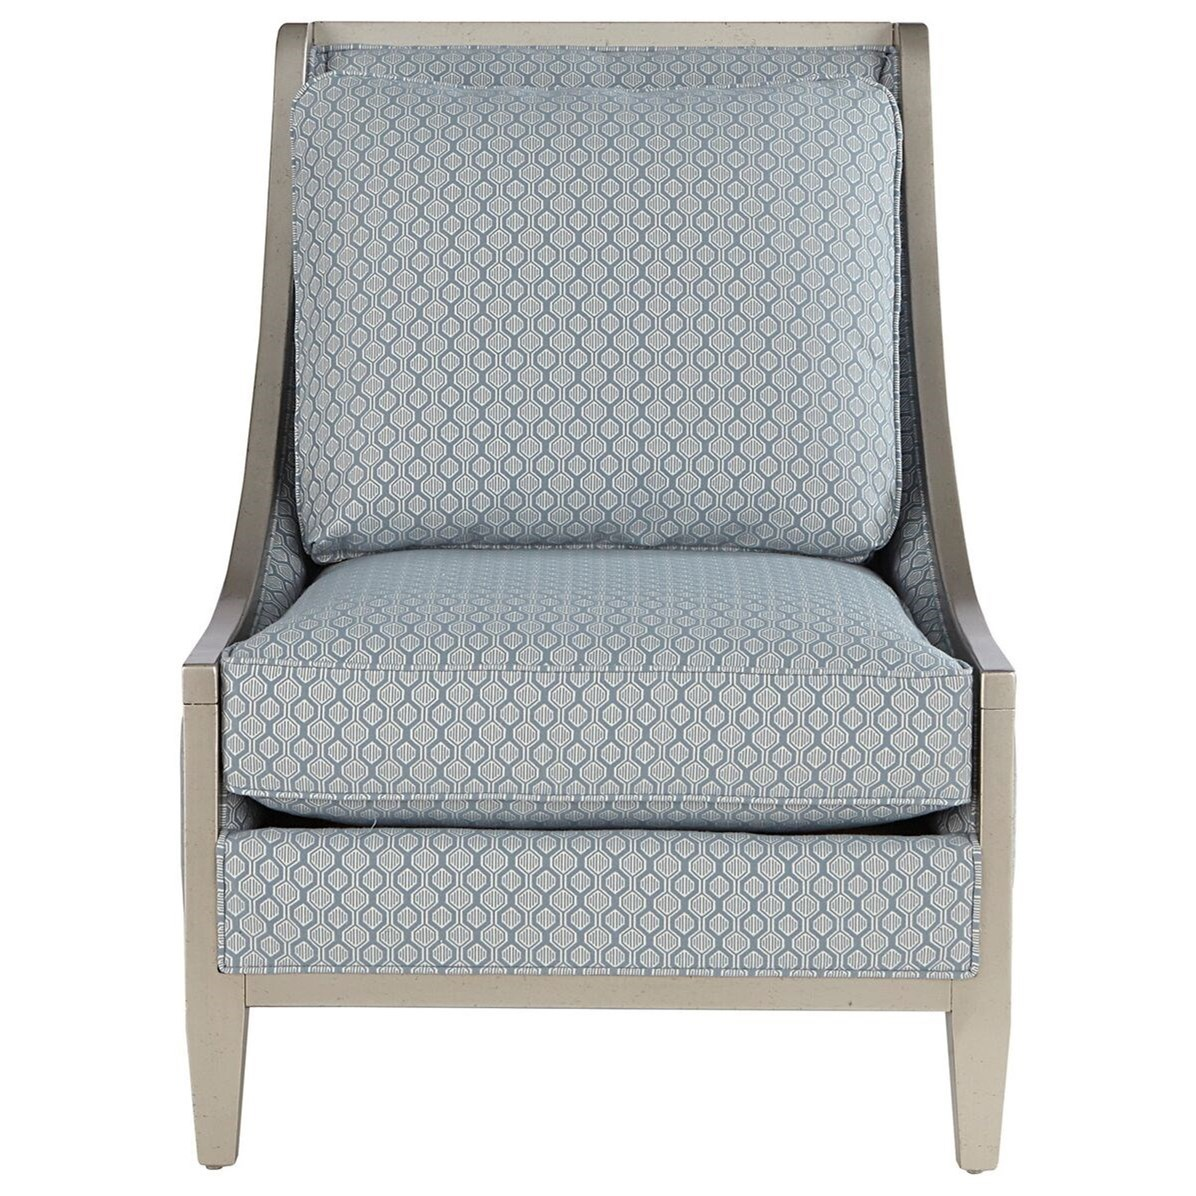 Markor Furniture Morgan Wood Frame Accent Chair With Swoop